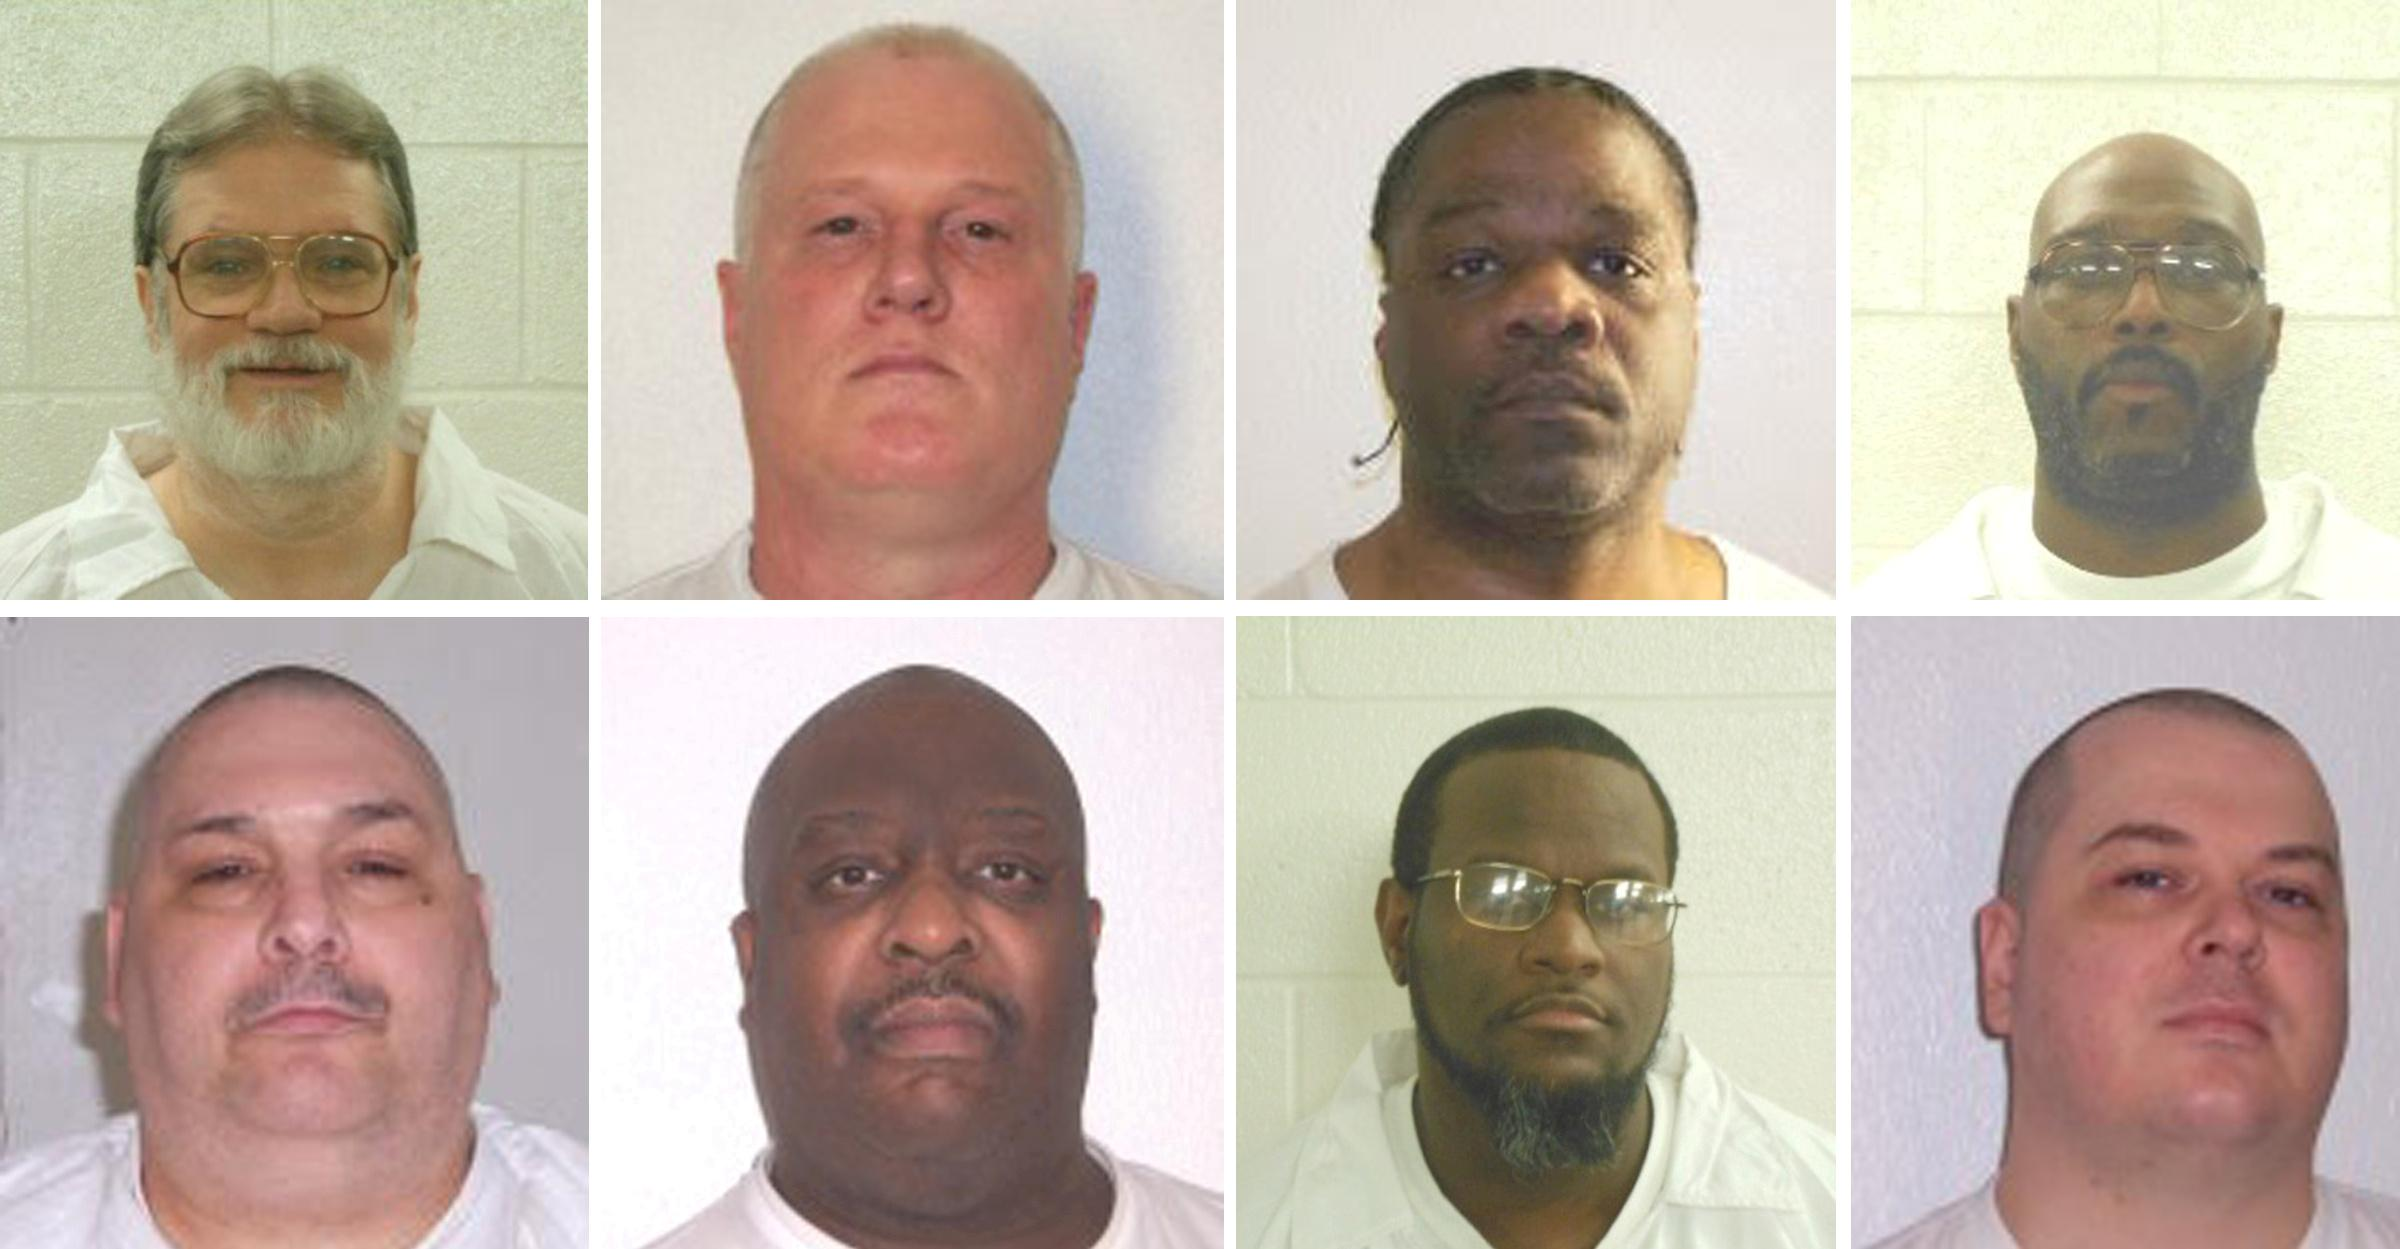 Panel recommends keeping moratorium on Oklahoma executions